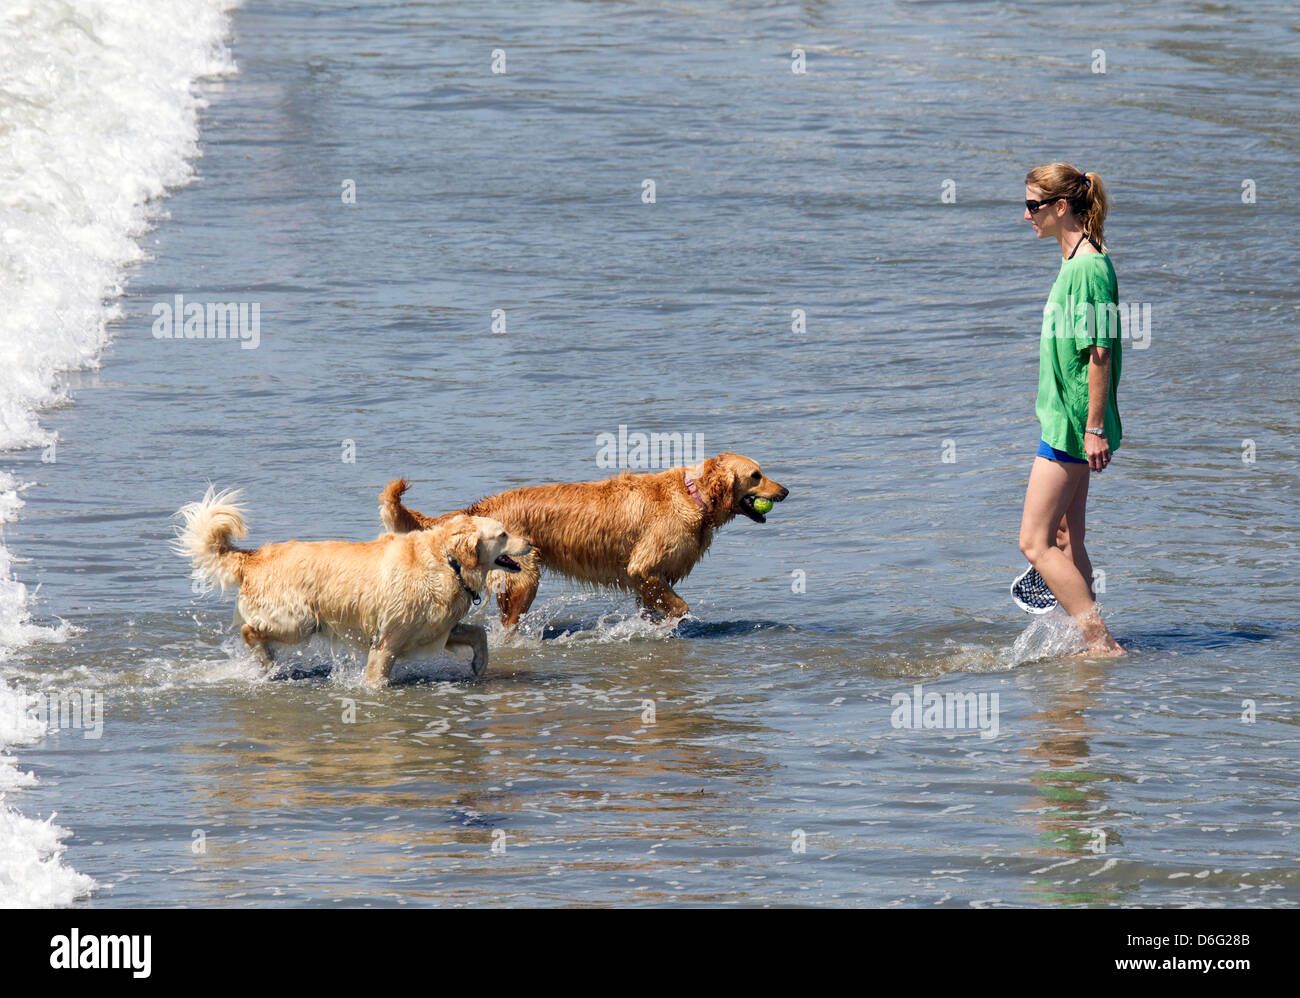 Two Golden Retrievers Bringing Back a Ball from the Ocean - Stock Image